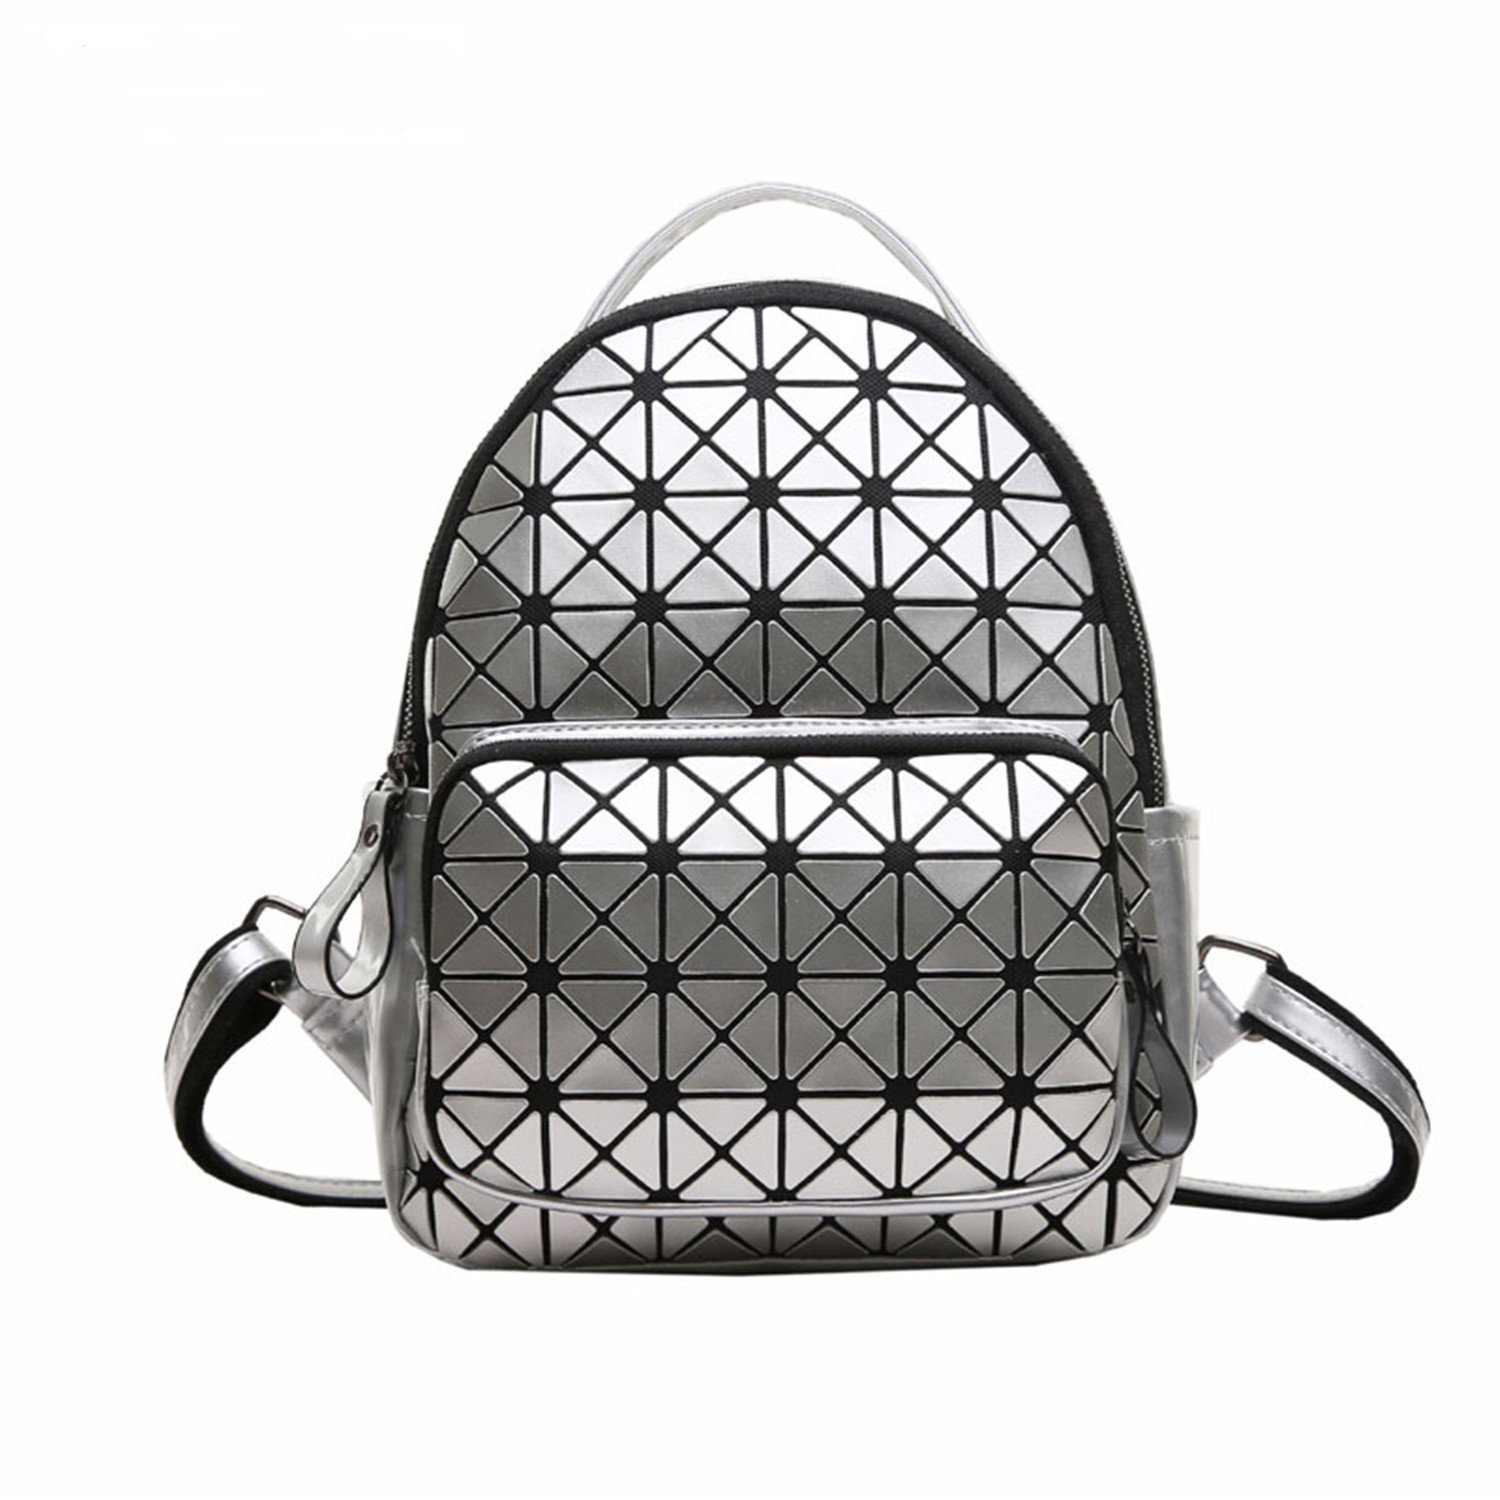 Amazon.com: Bikifree Fashion Women Backpack Geometric Plaid Sequin Female Scool Backpacks For Teenage Girls Bagpack Women Backpack White20x12x25CM: Shoes